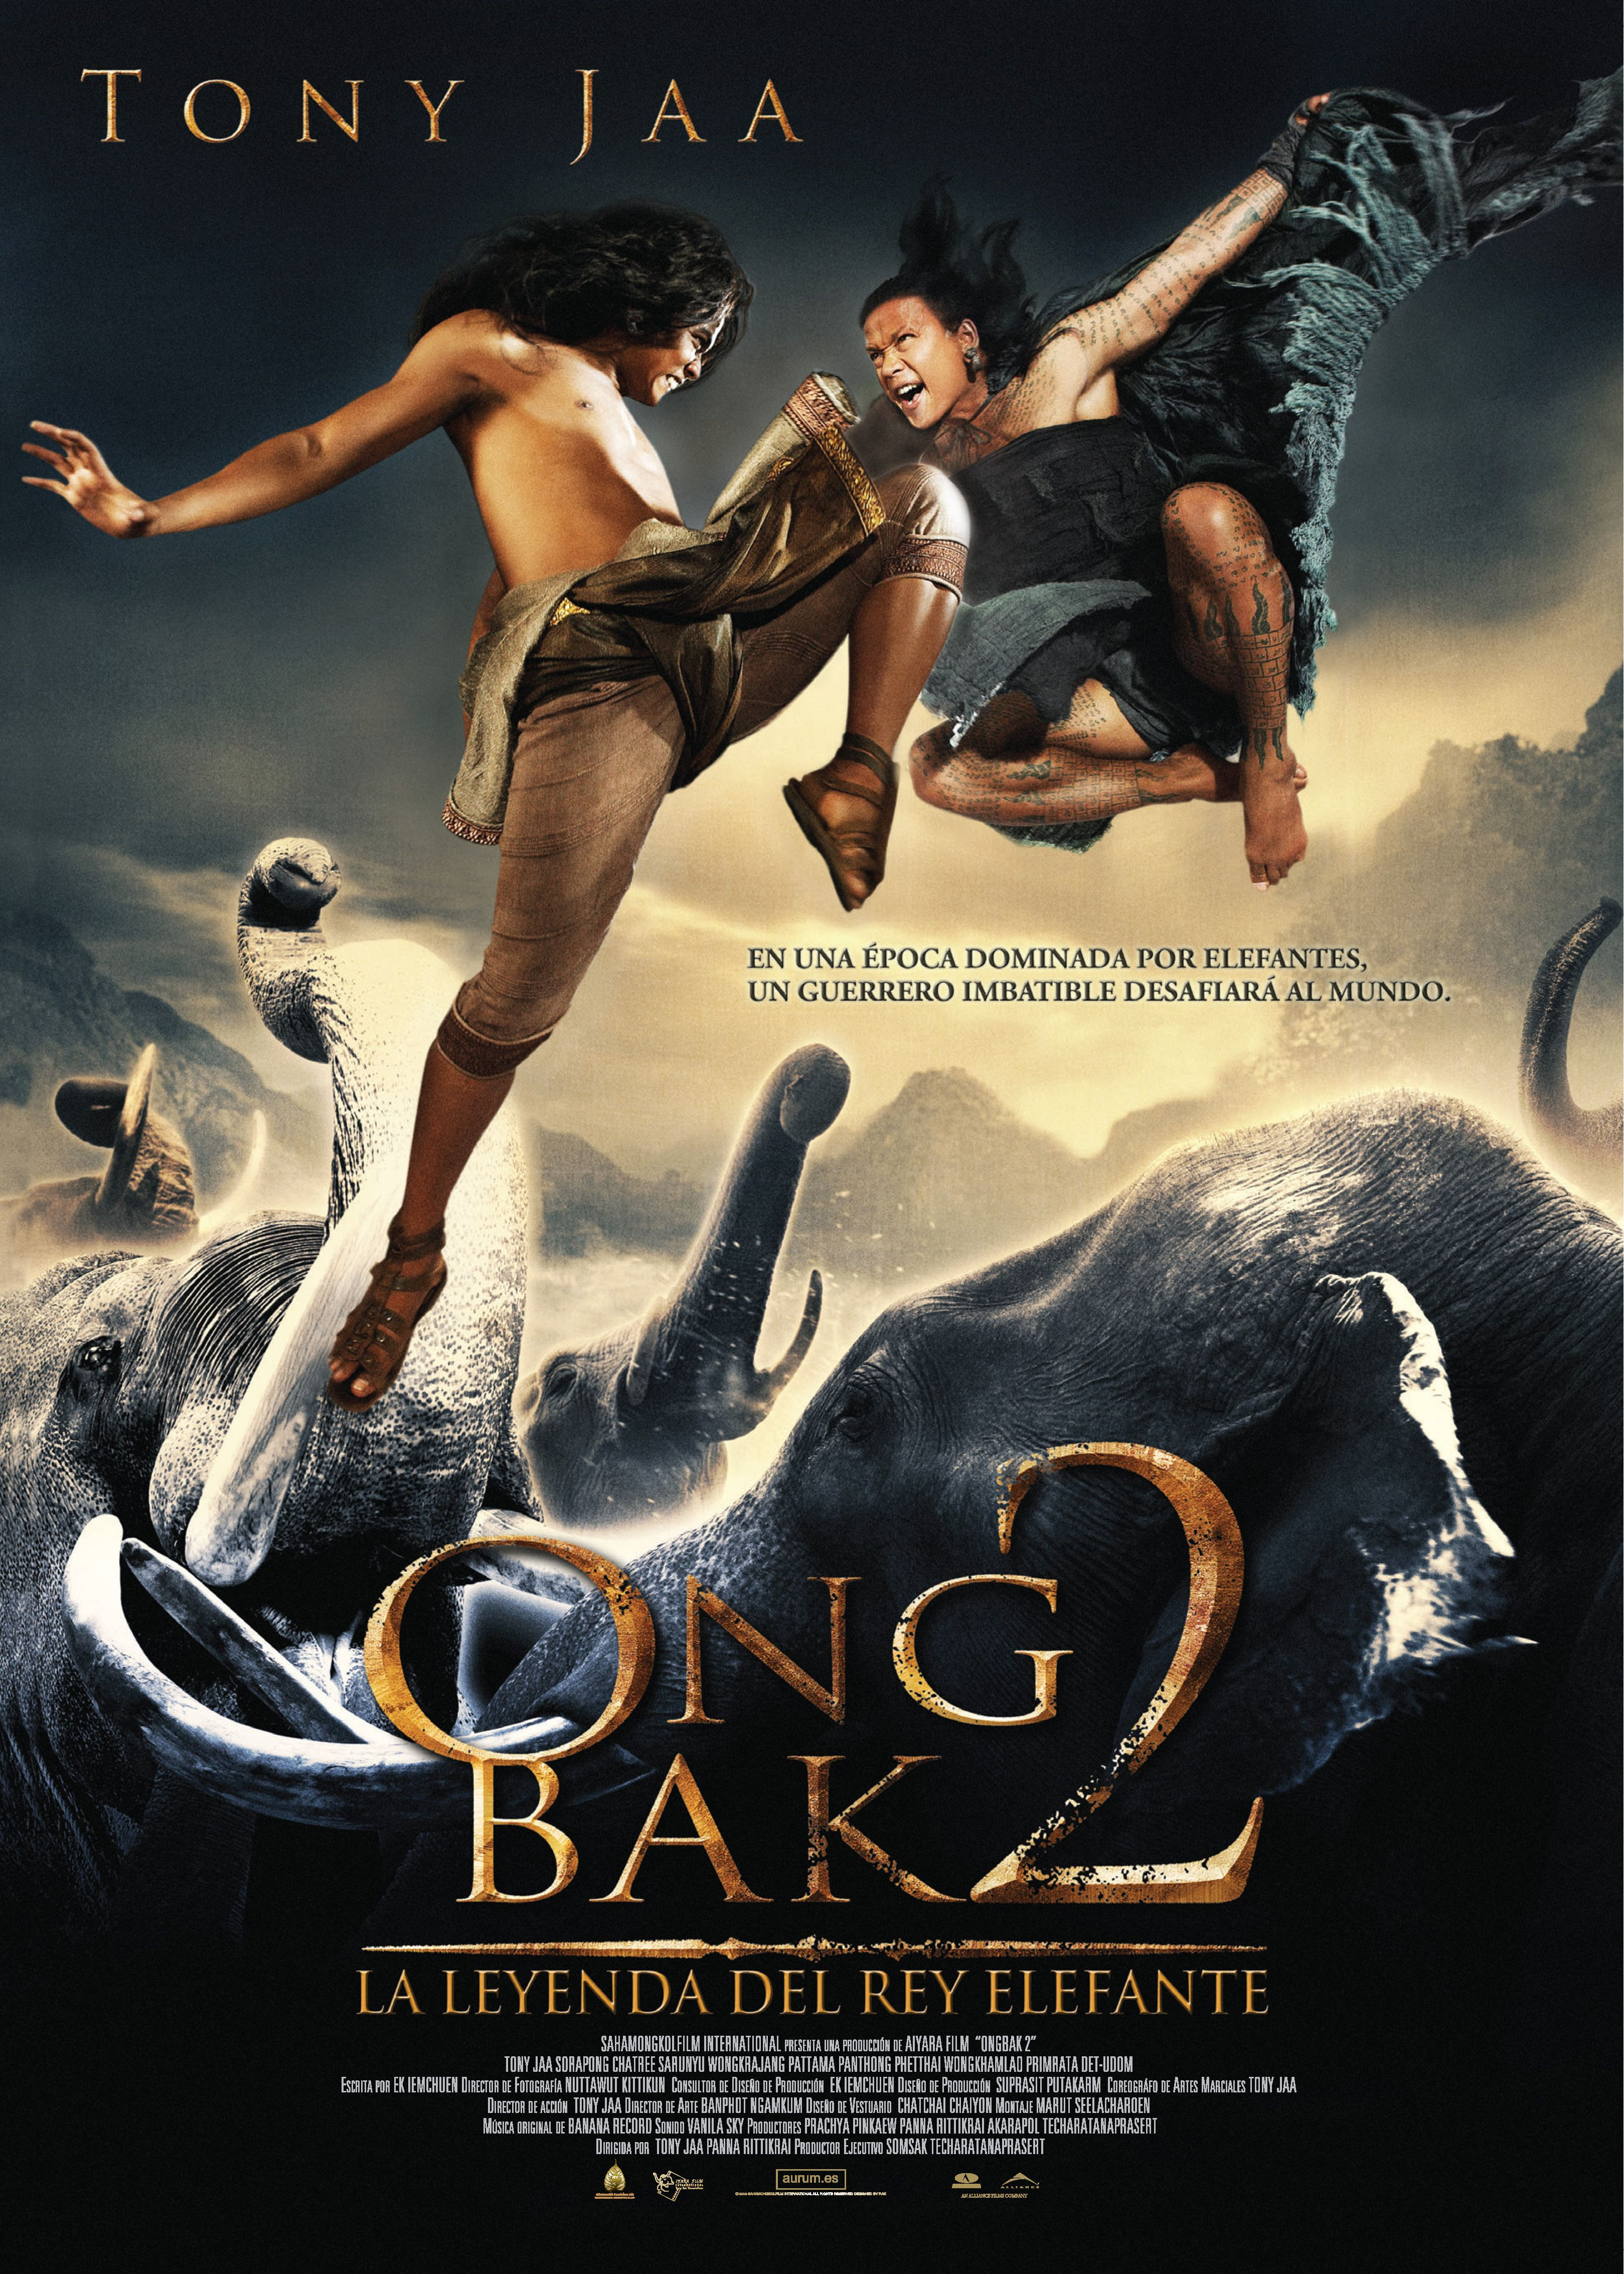 Ong Bak 2 Full Movies Online Free Watch Free Movies Online Movies Online